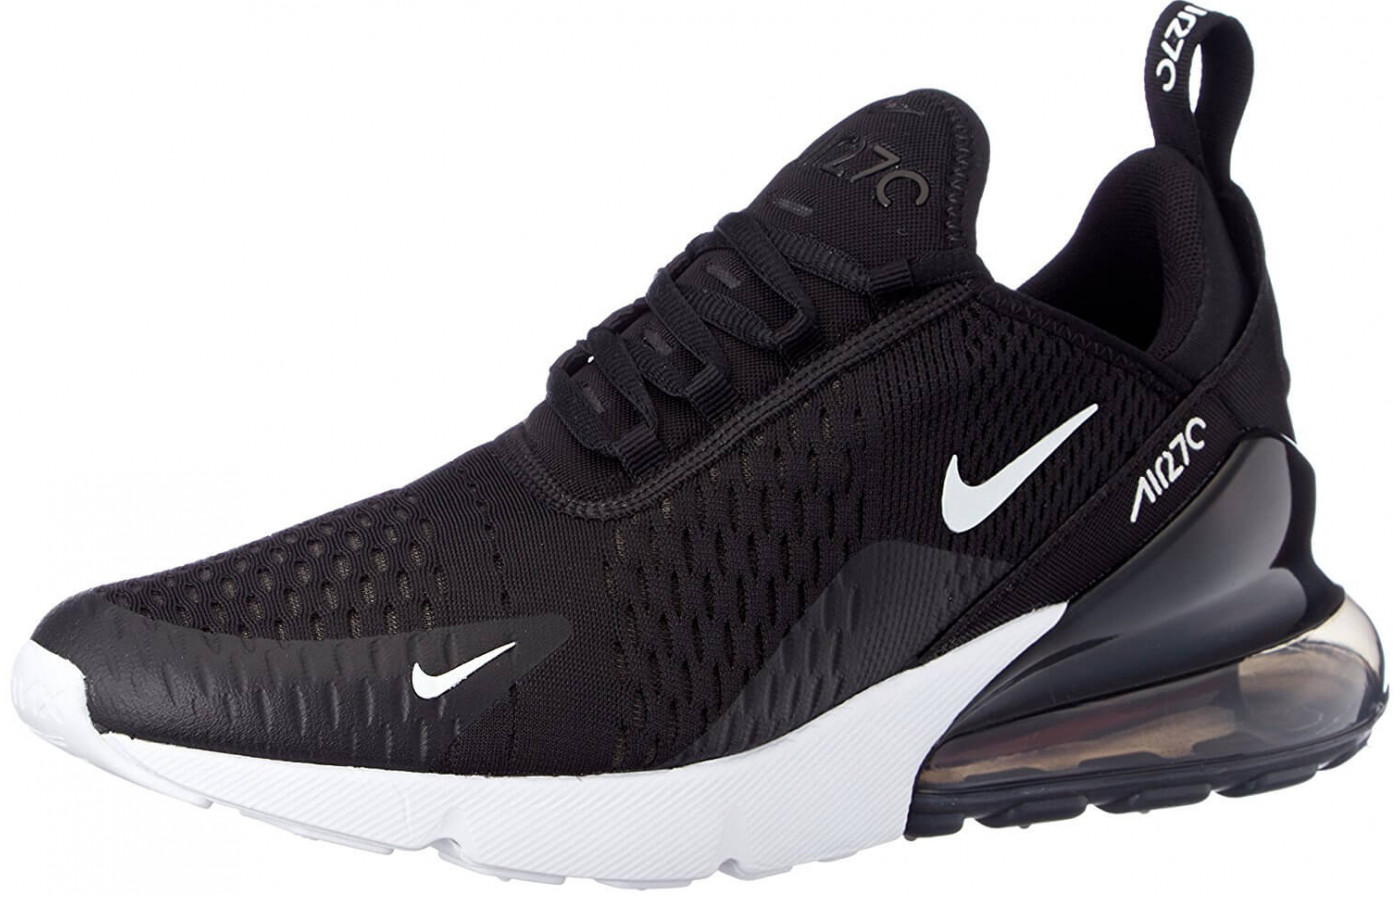 9d8409080 Nike Air Max 270 Reviewed - To Buy or Not in July 2019?